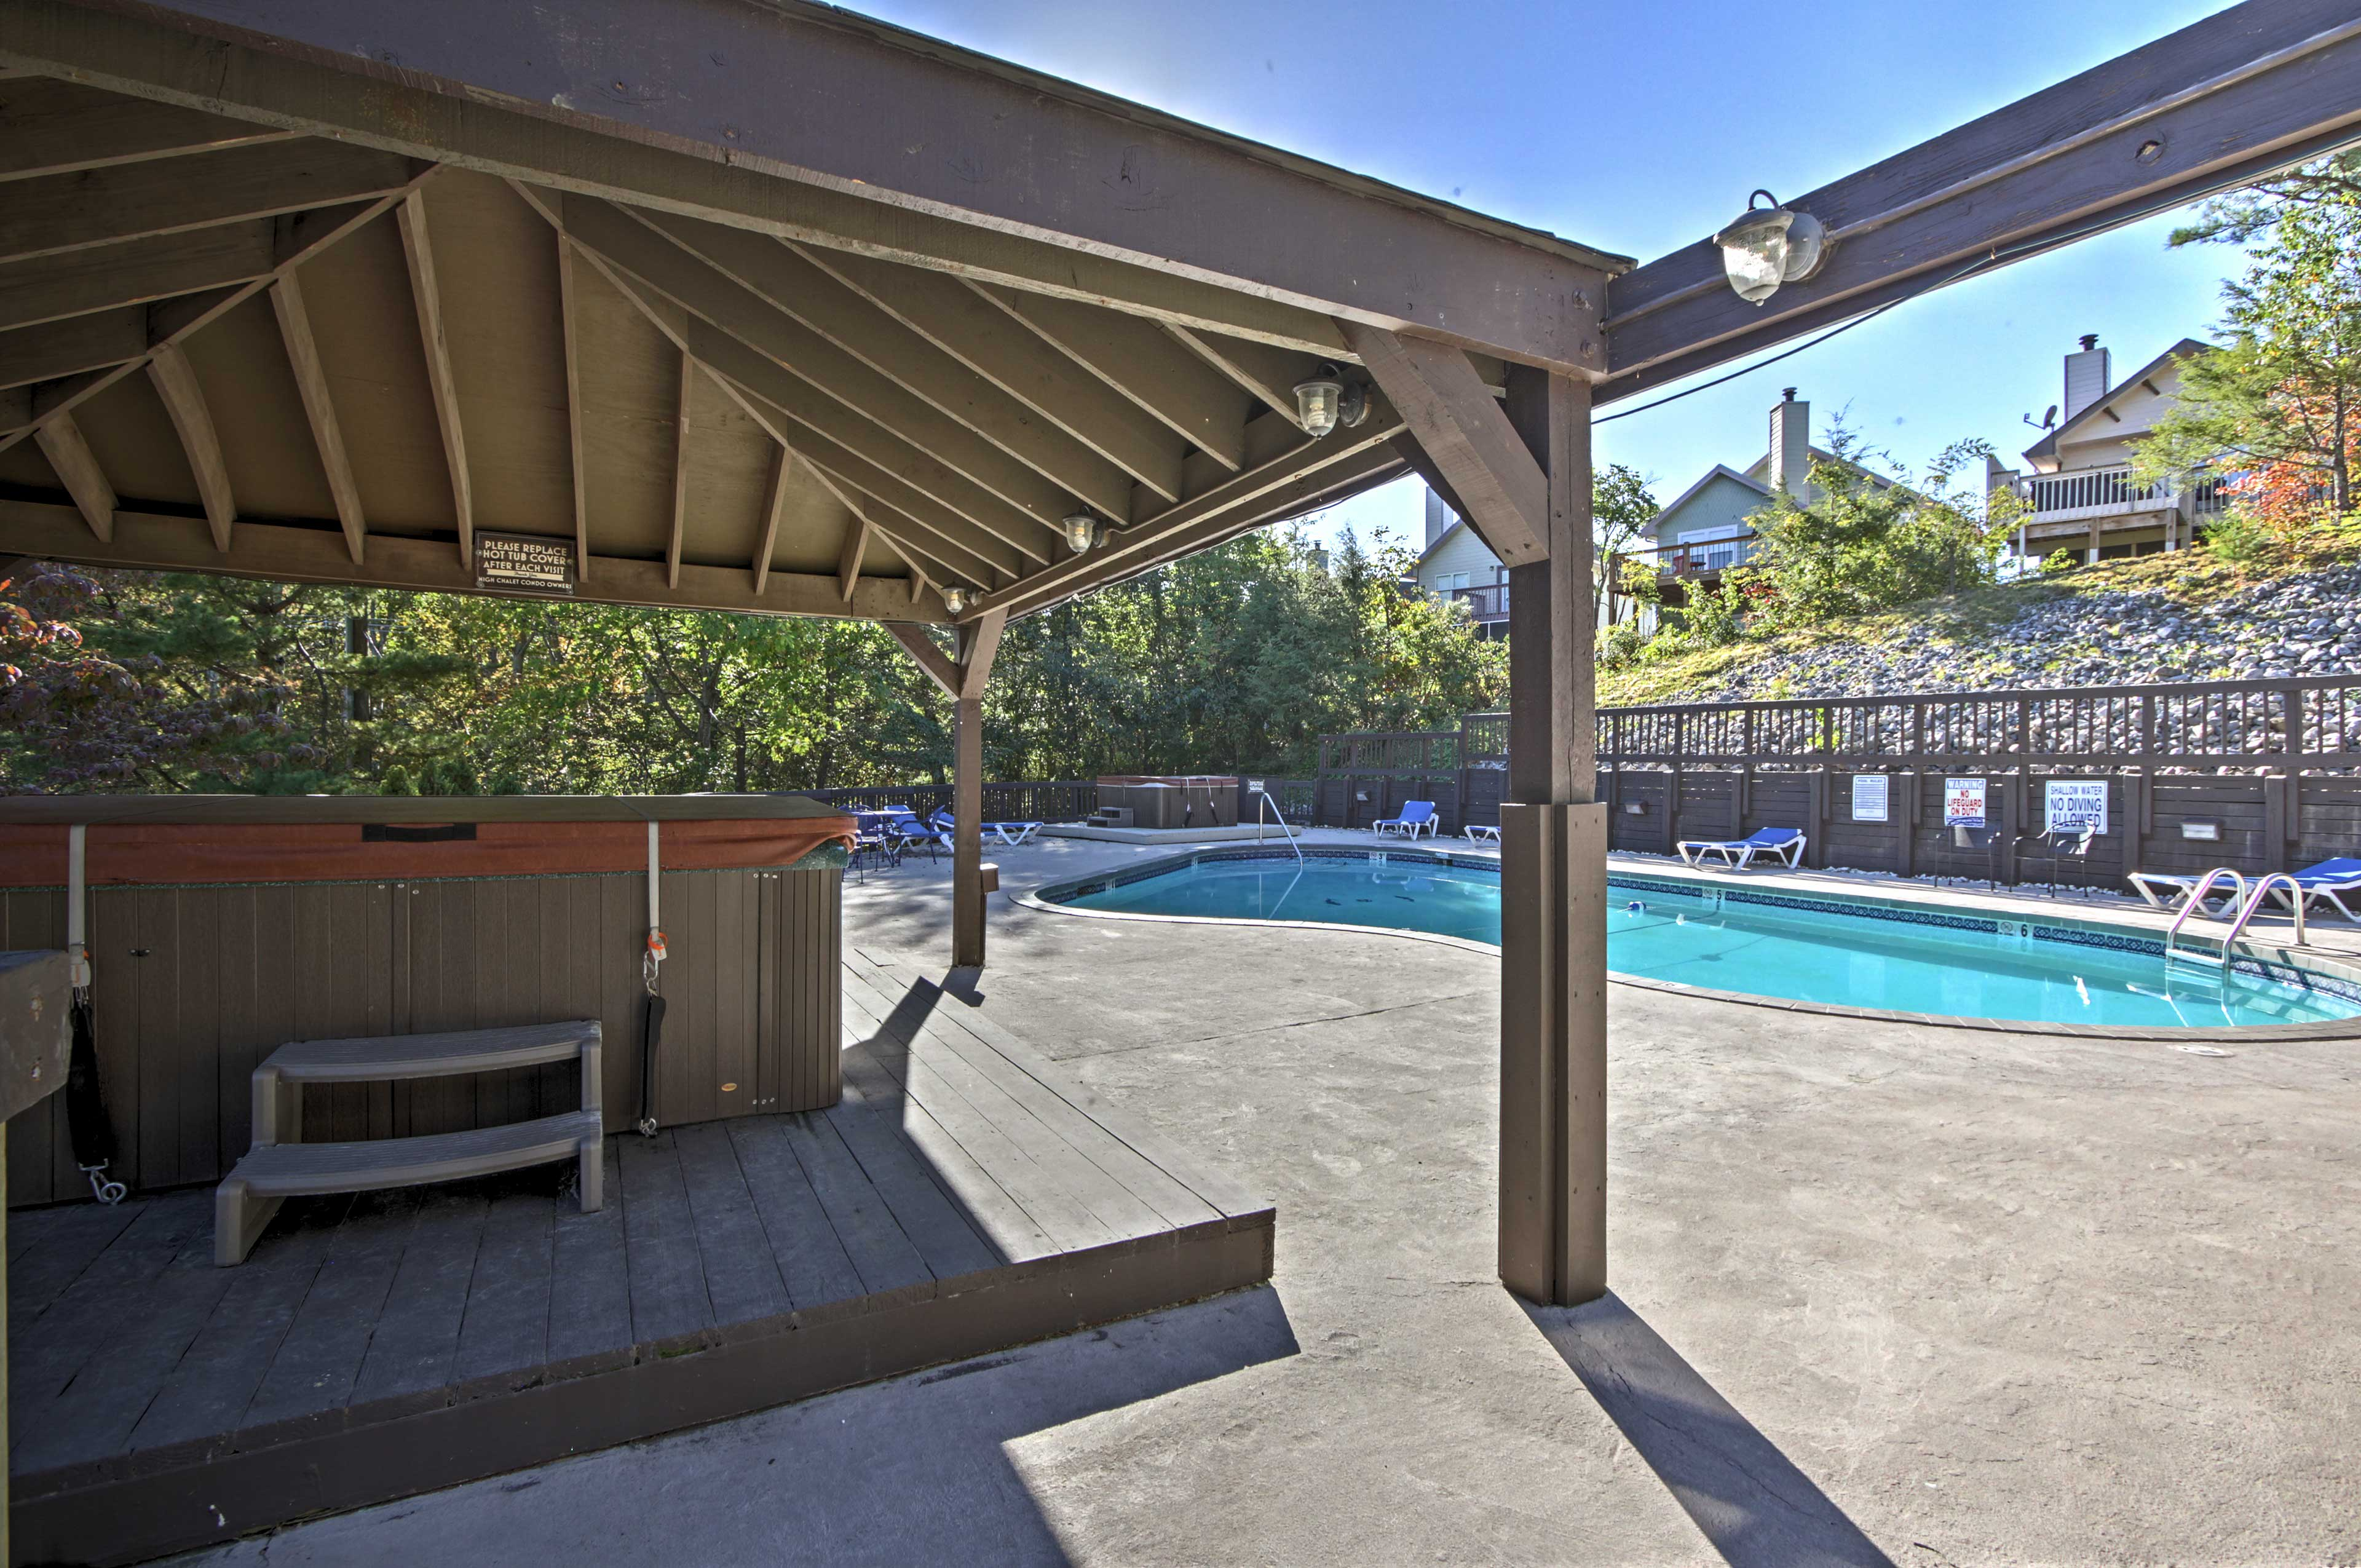 Stop by to check out the wonderful community amenities.